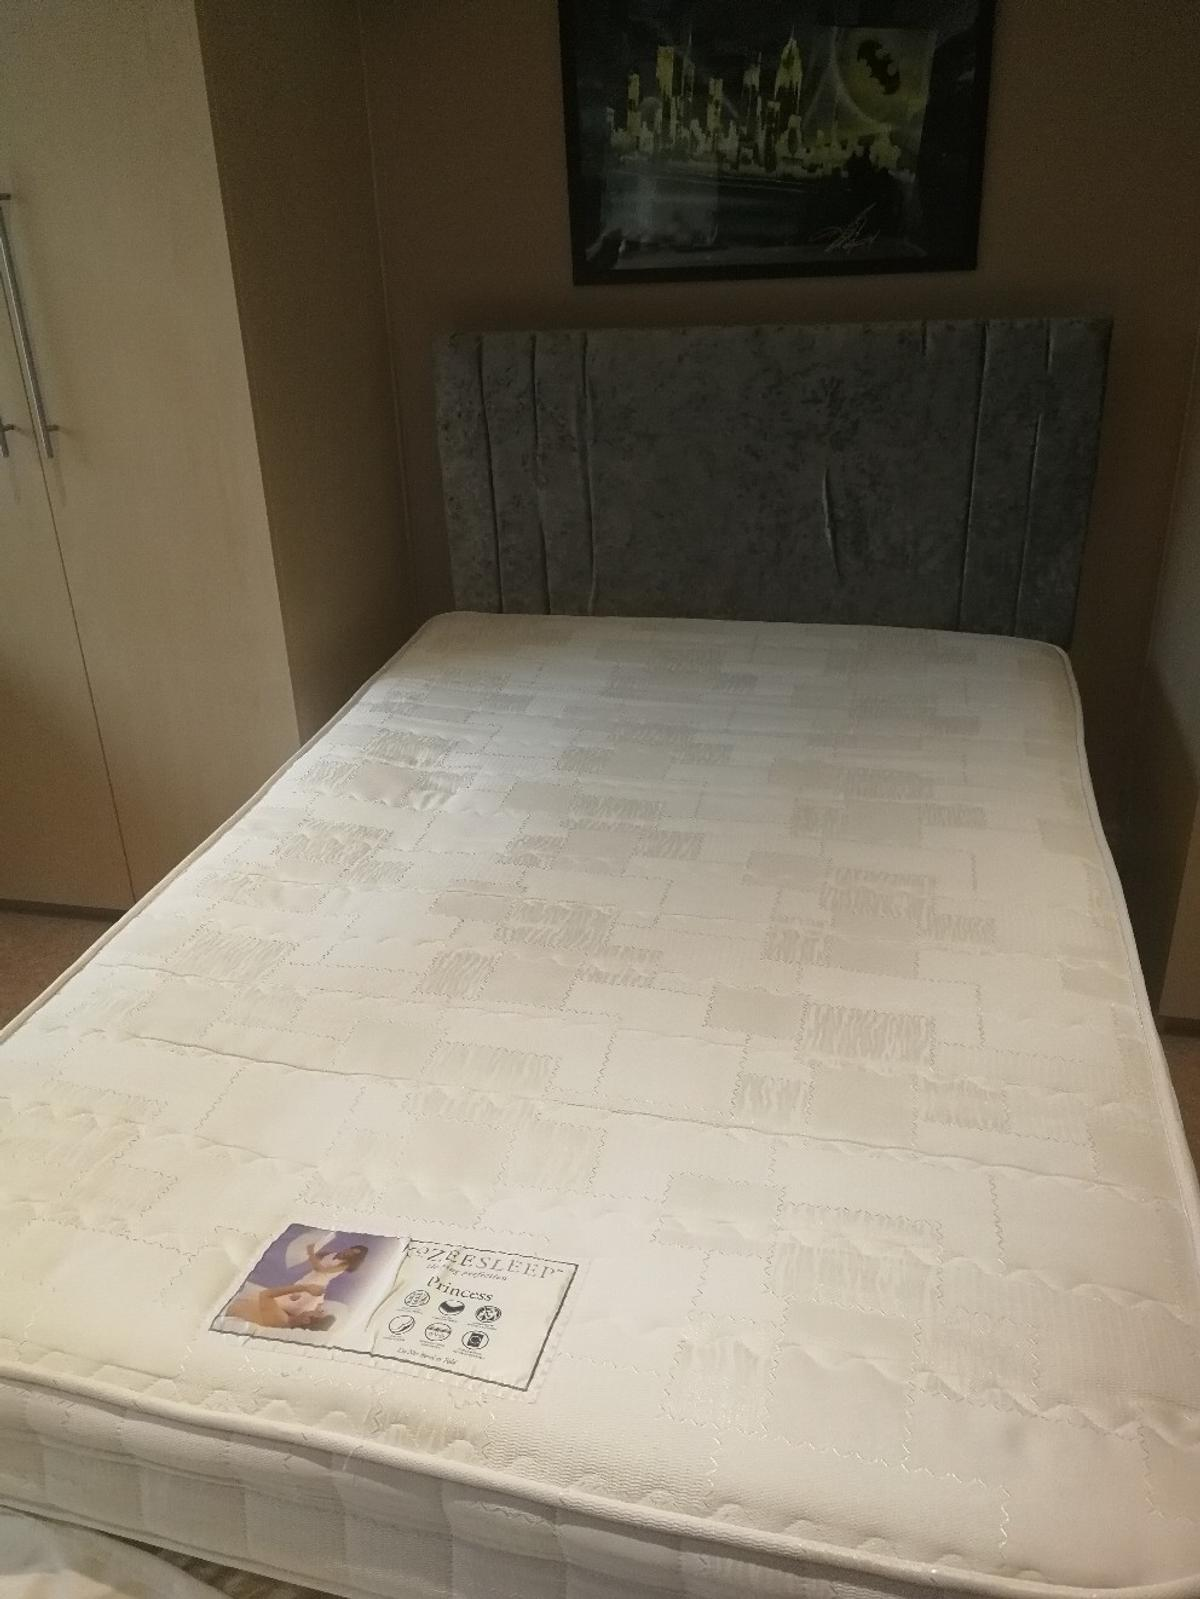 sale retailer a3d4b 898c7 Small double sized bed, mattress & headboard